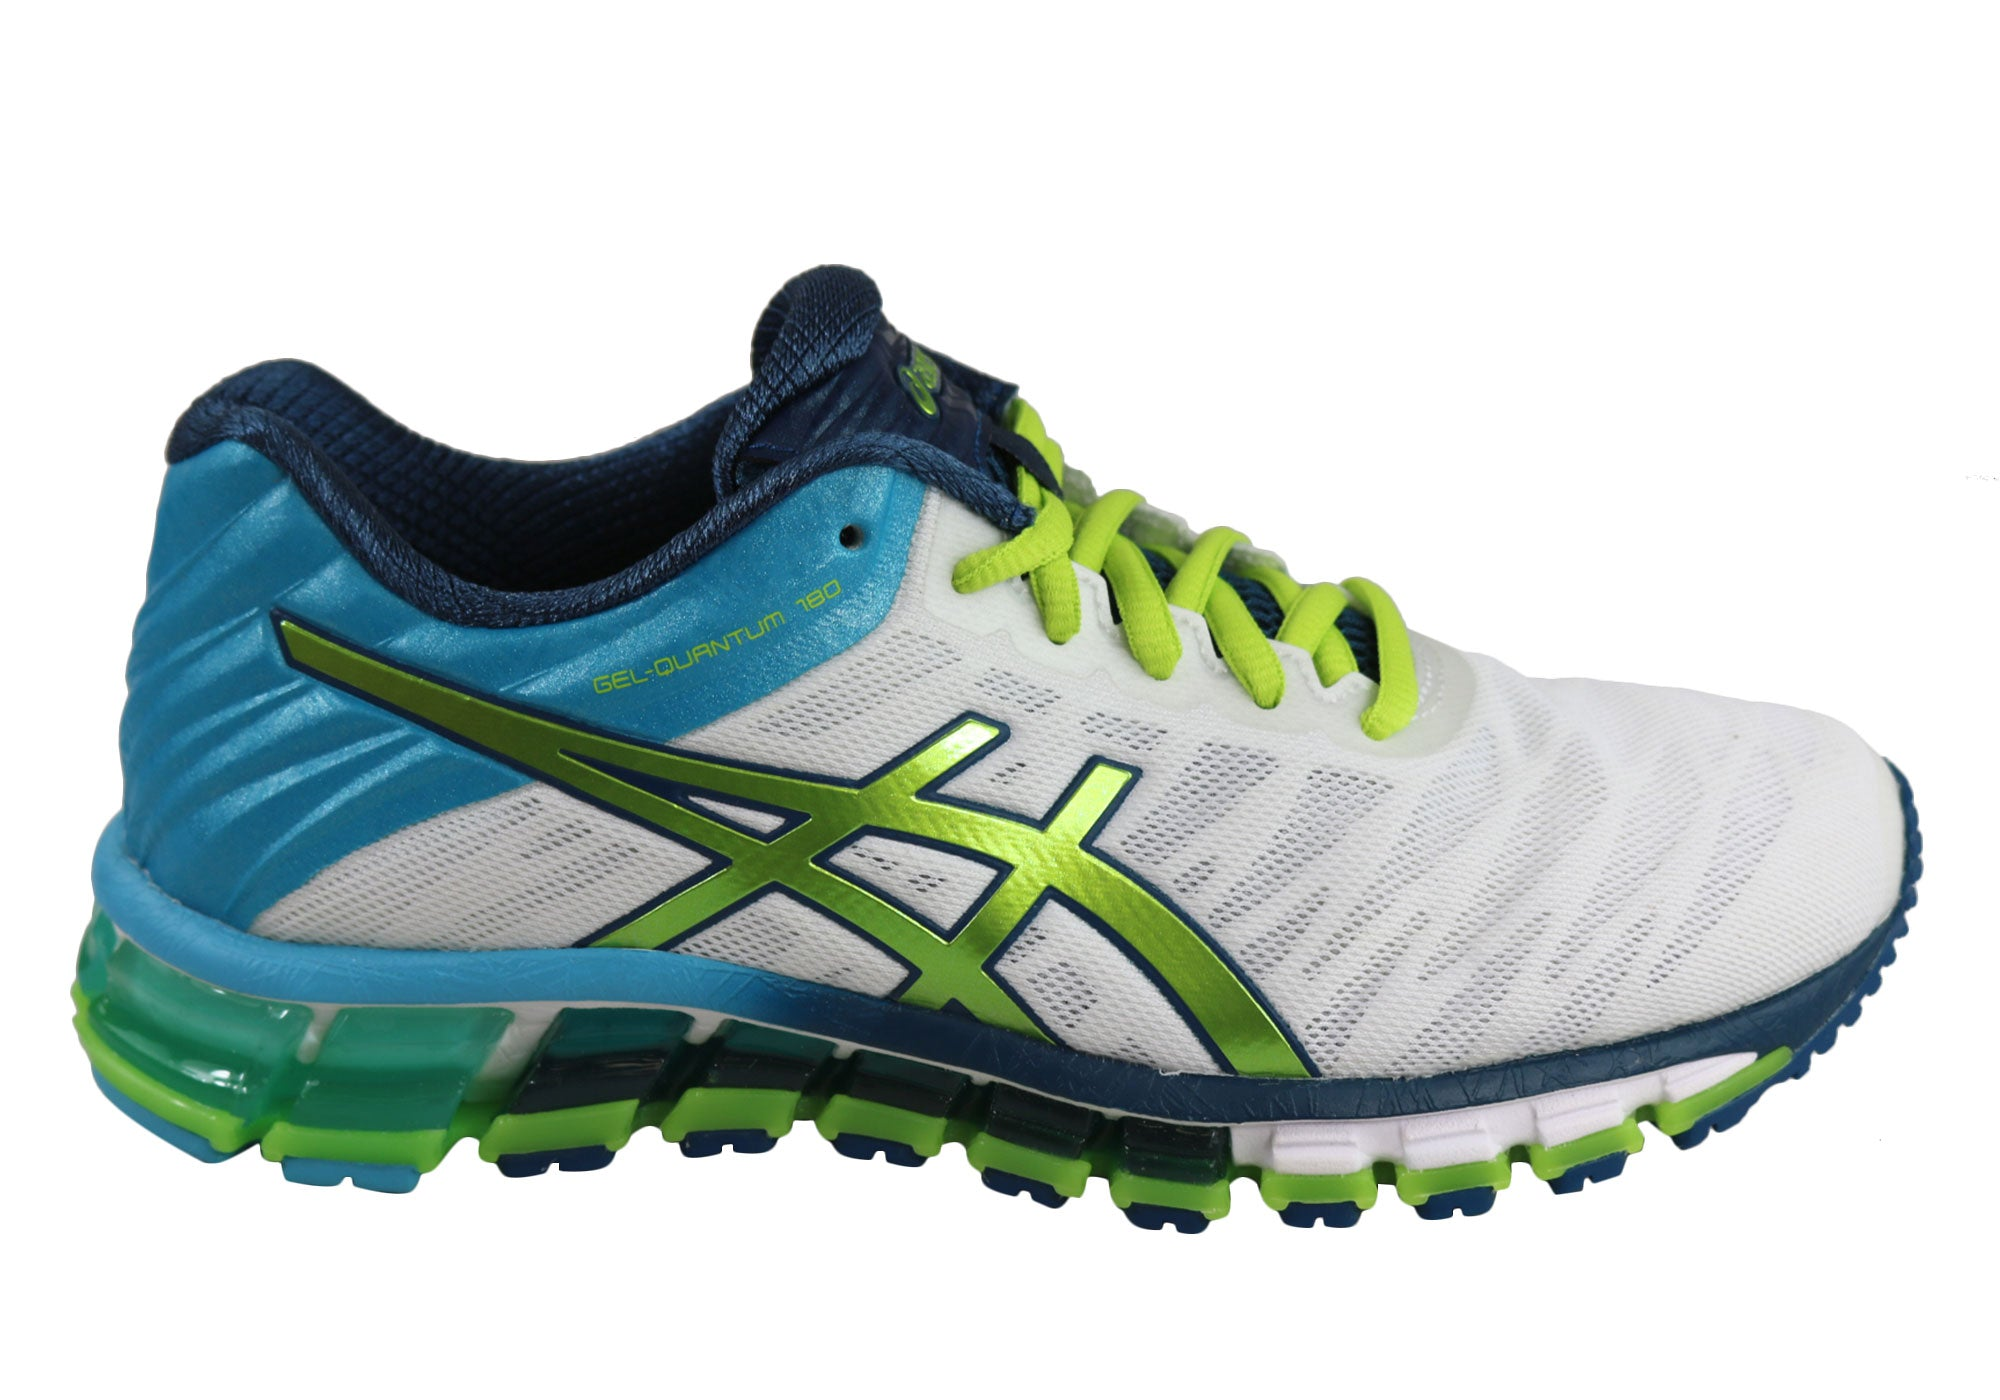 32d2f4215b8 Home Asics Quantum 180 Womens Cushioned Sports Running Shoes. Black Gold   White Lime ...